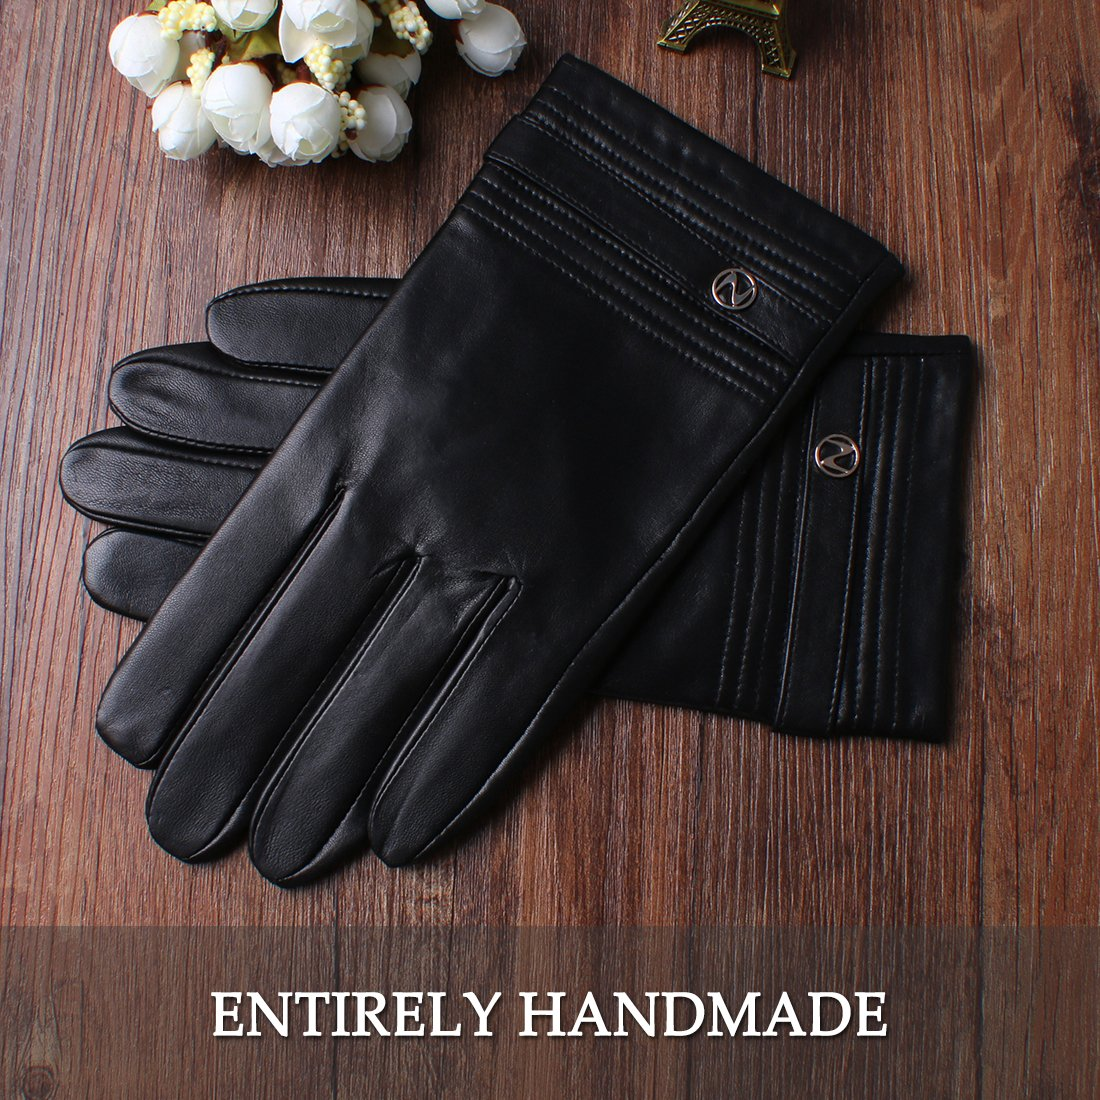 Nappaglo Men's Genuine Lambskin Leather Gloves Touchscreen Winter Warm Windproof Cycling Mittens (S (Palm Girth:up to 8''), Black (Touchscreen)) by Nappaglo (Image #3)